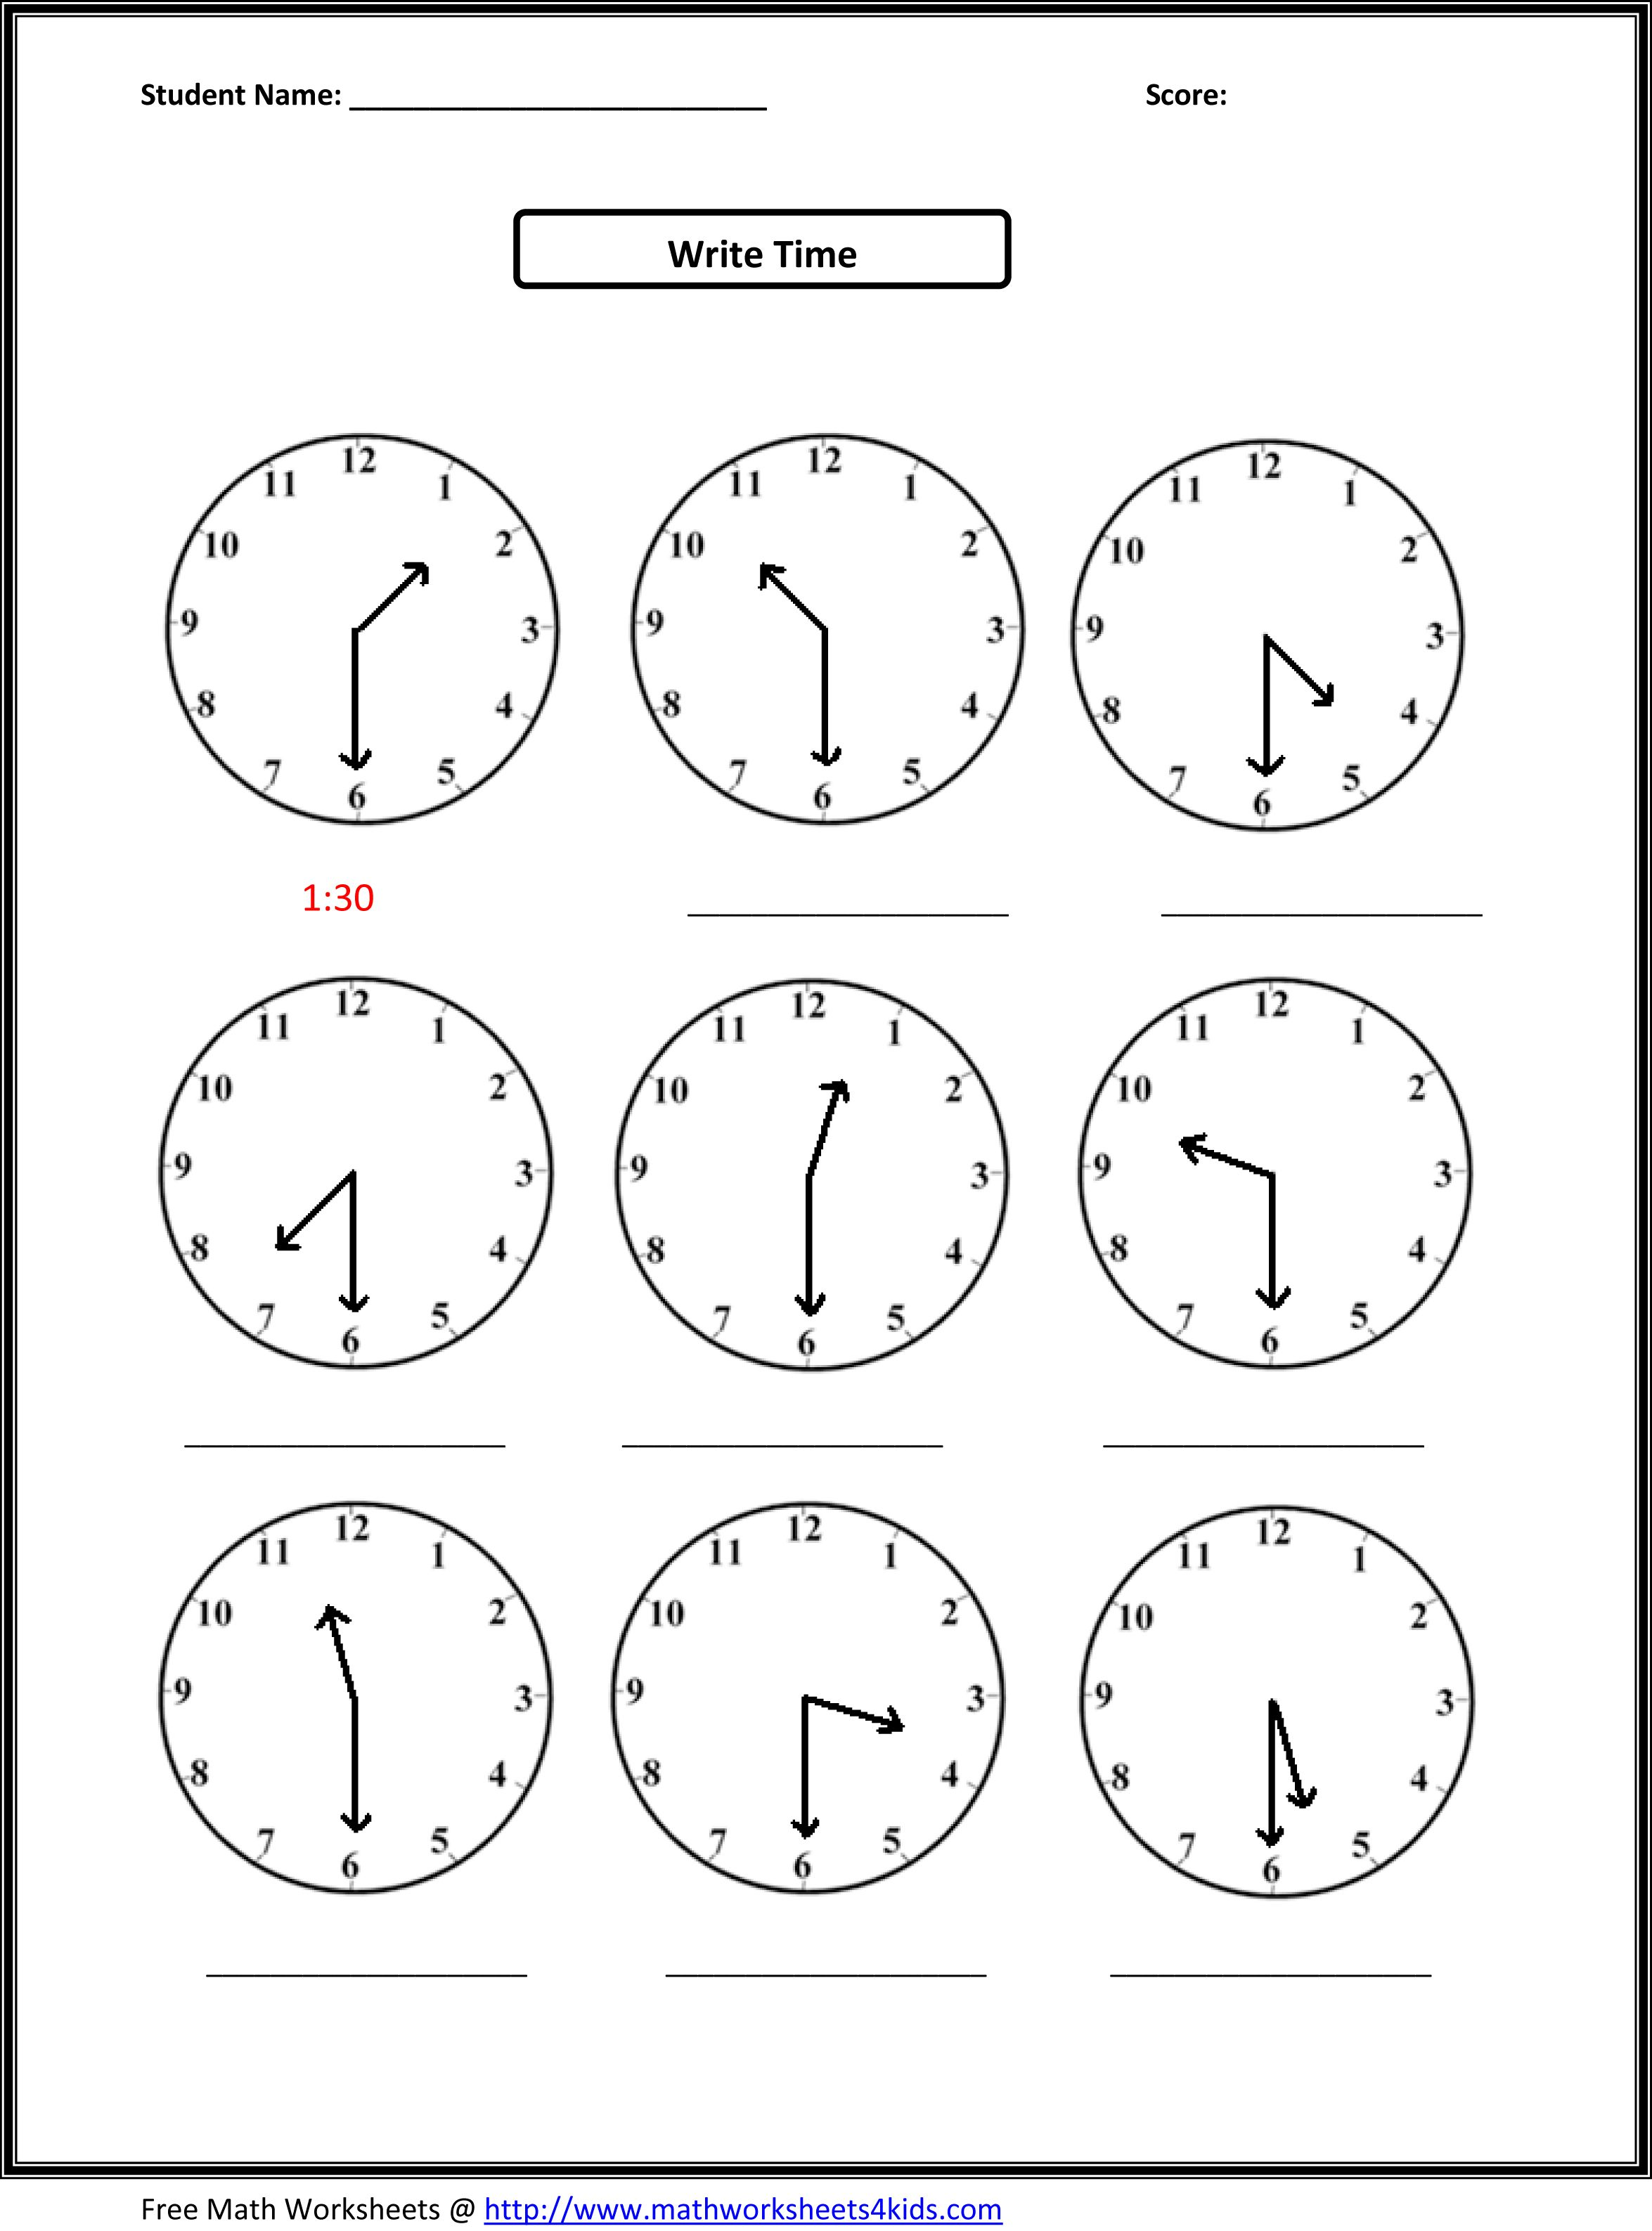 Weirdmailus  Marvelous Worksheet On Time For Grade   Reocurent With Excellent Free Printable Telling Time Worksheets Nd Grade  Reocurent With Beautiful Key Stage  Worksheets English Also Main Idea Worksheets For Grade  In Addition Simplifying Variable Expressions Worksheets And Idioms Worksheets For Th Grade As Well As English Grammar Worksheet For Grade  Additionally Obtuse Acute And Right Angles Worksheet From Reocurentcom With Weirdmailus  Excellent Worksheet On Time For Grade   Reocurent With Beautiful Free Printable Telling Time Worksheets Nd Grade  Reocurent And Marvelous Key Stage  Worksheets English Also Main Idea Worksheets For Grade  In Addition Simplifying Variable Expressions Worksheets From Reocurentcom